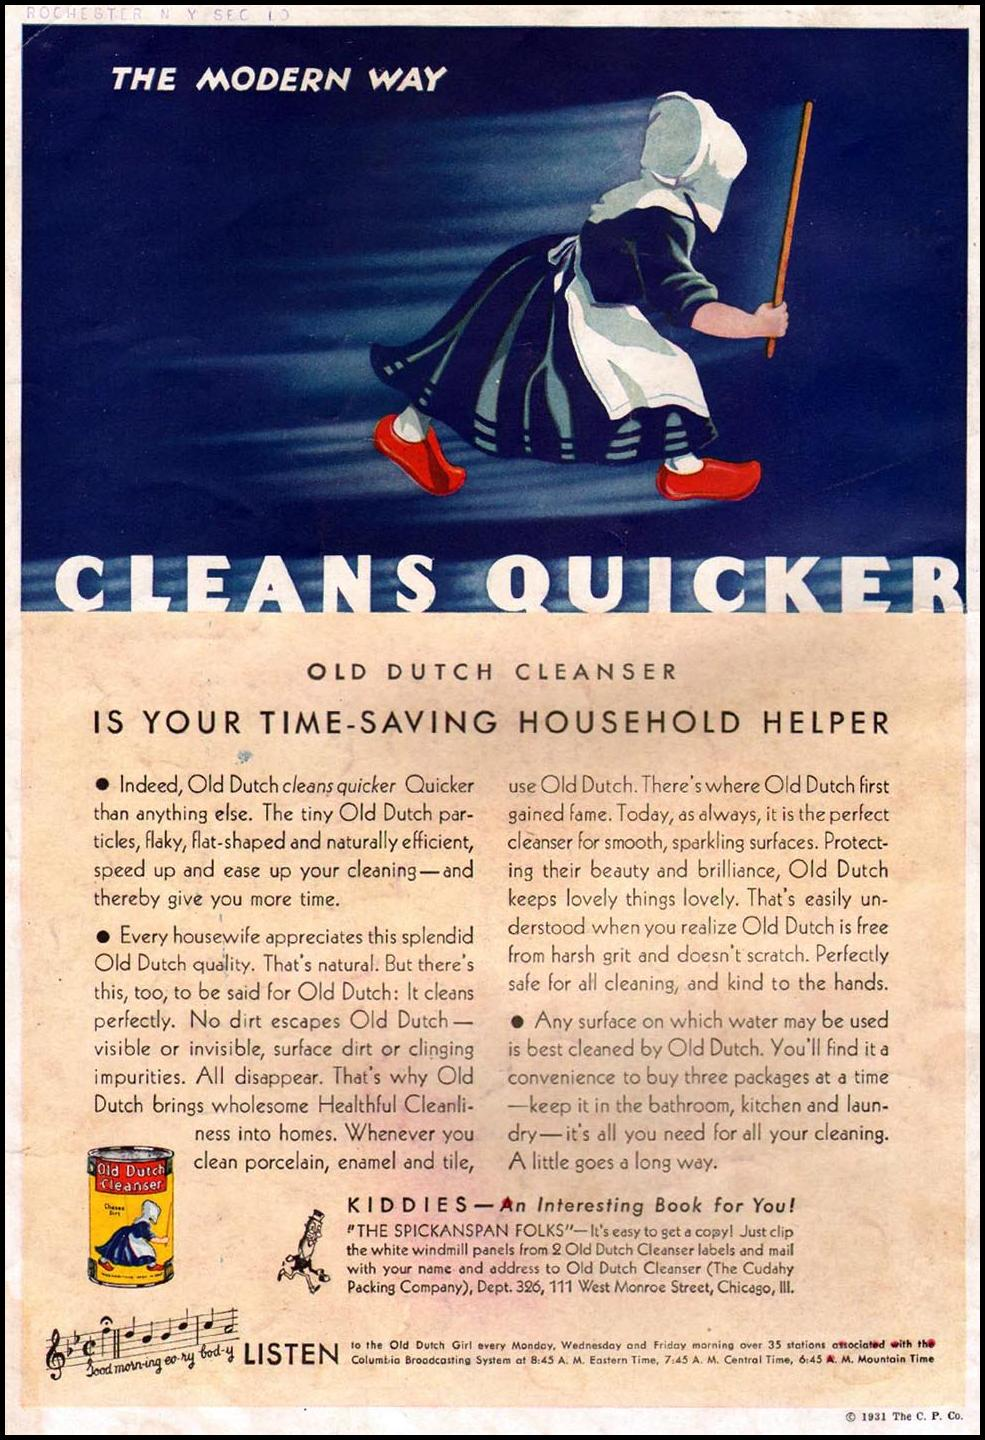 OLD DUTCH CLEANSER BETTER HOMES AND GARDENS 06/01/1931 BACK COVER